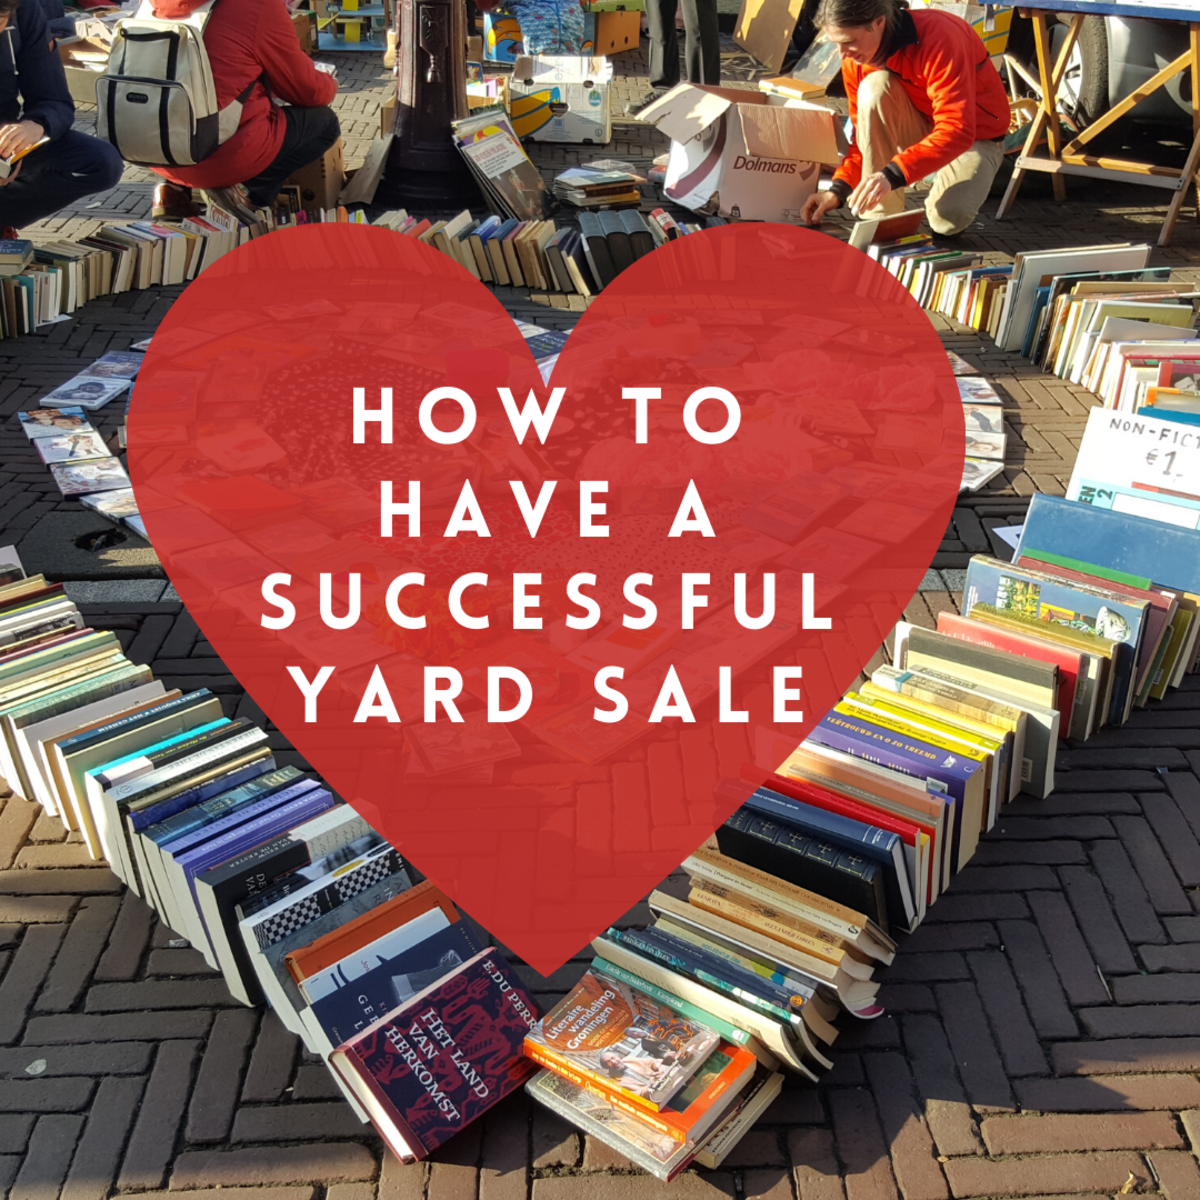 How to Have a Successful Garage/Yard Sale: The Ultimate Guide!